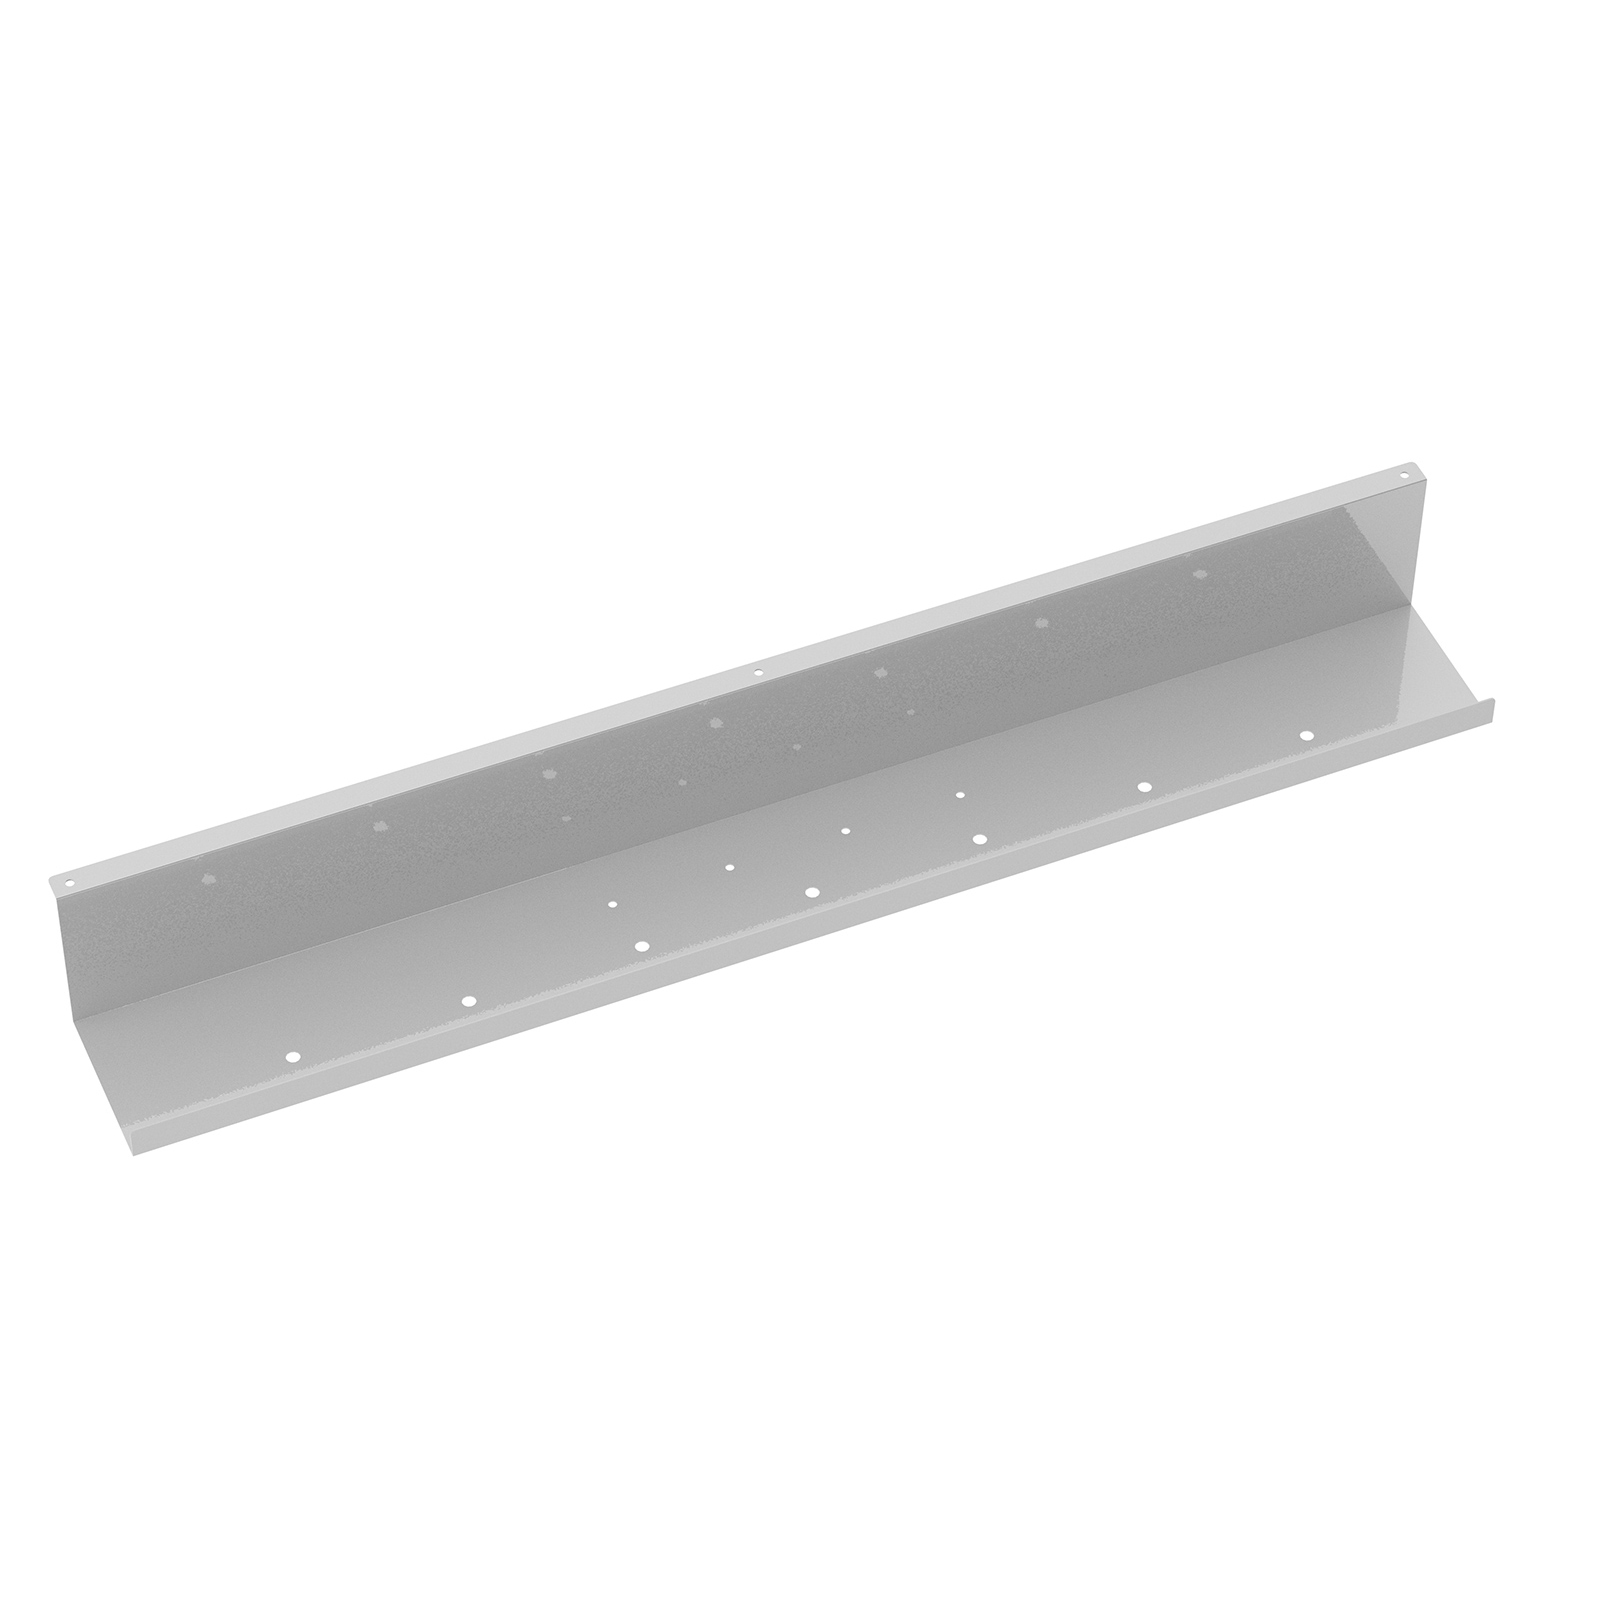 Cable Tidies Elev8 upper cable channel for single desks